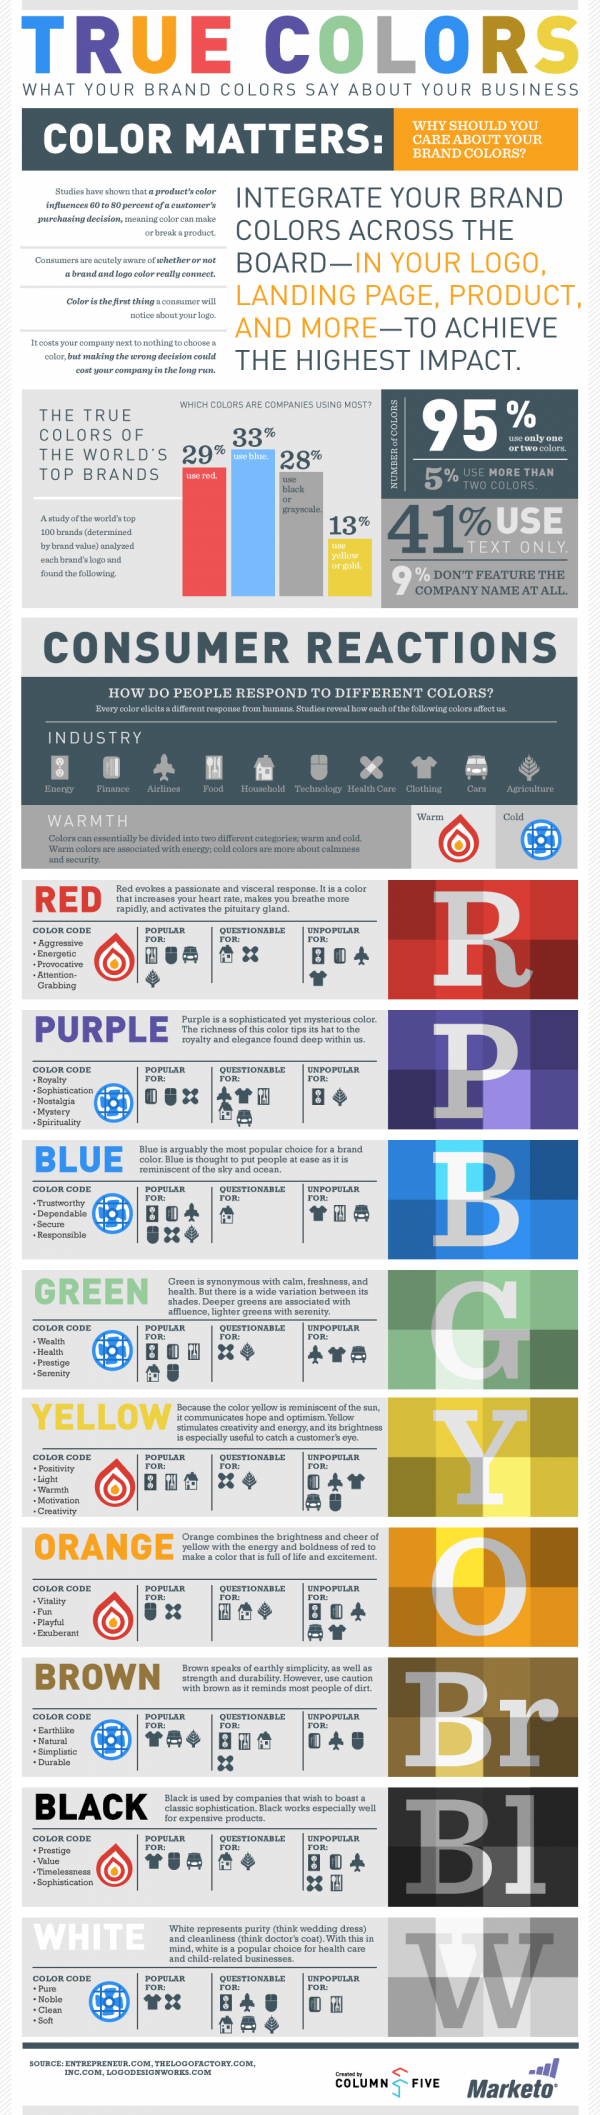 What Does Your Brands Colour Scheme Say About Your Business?